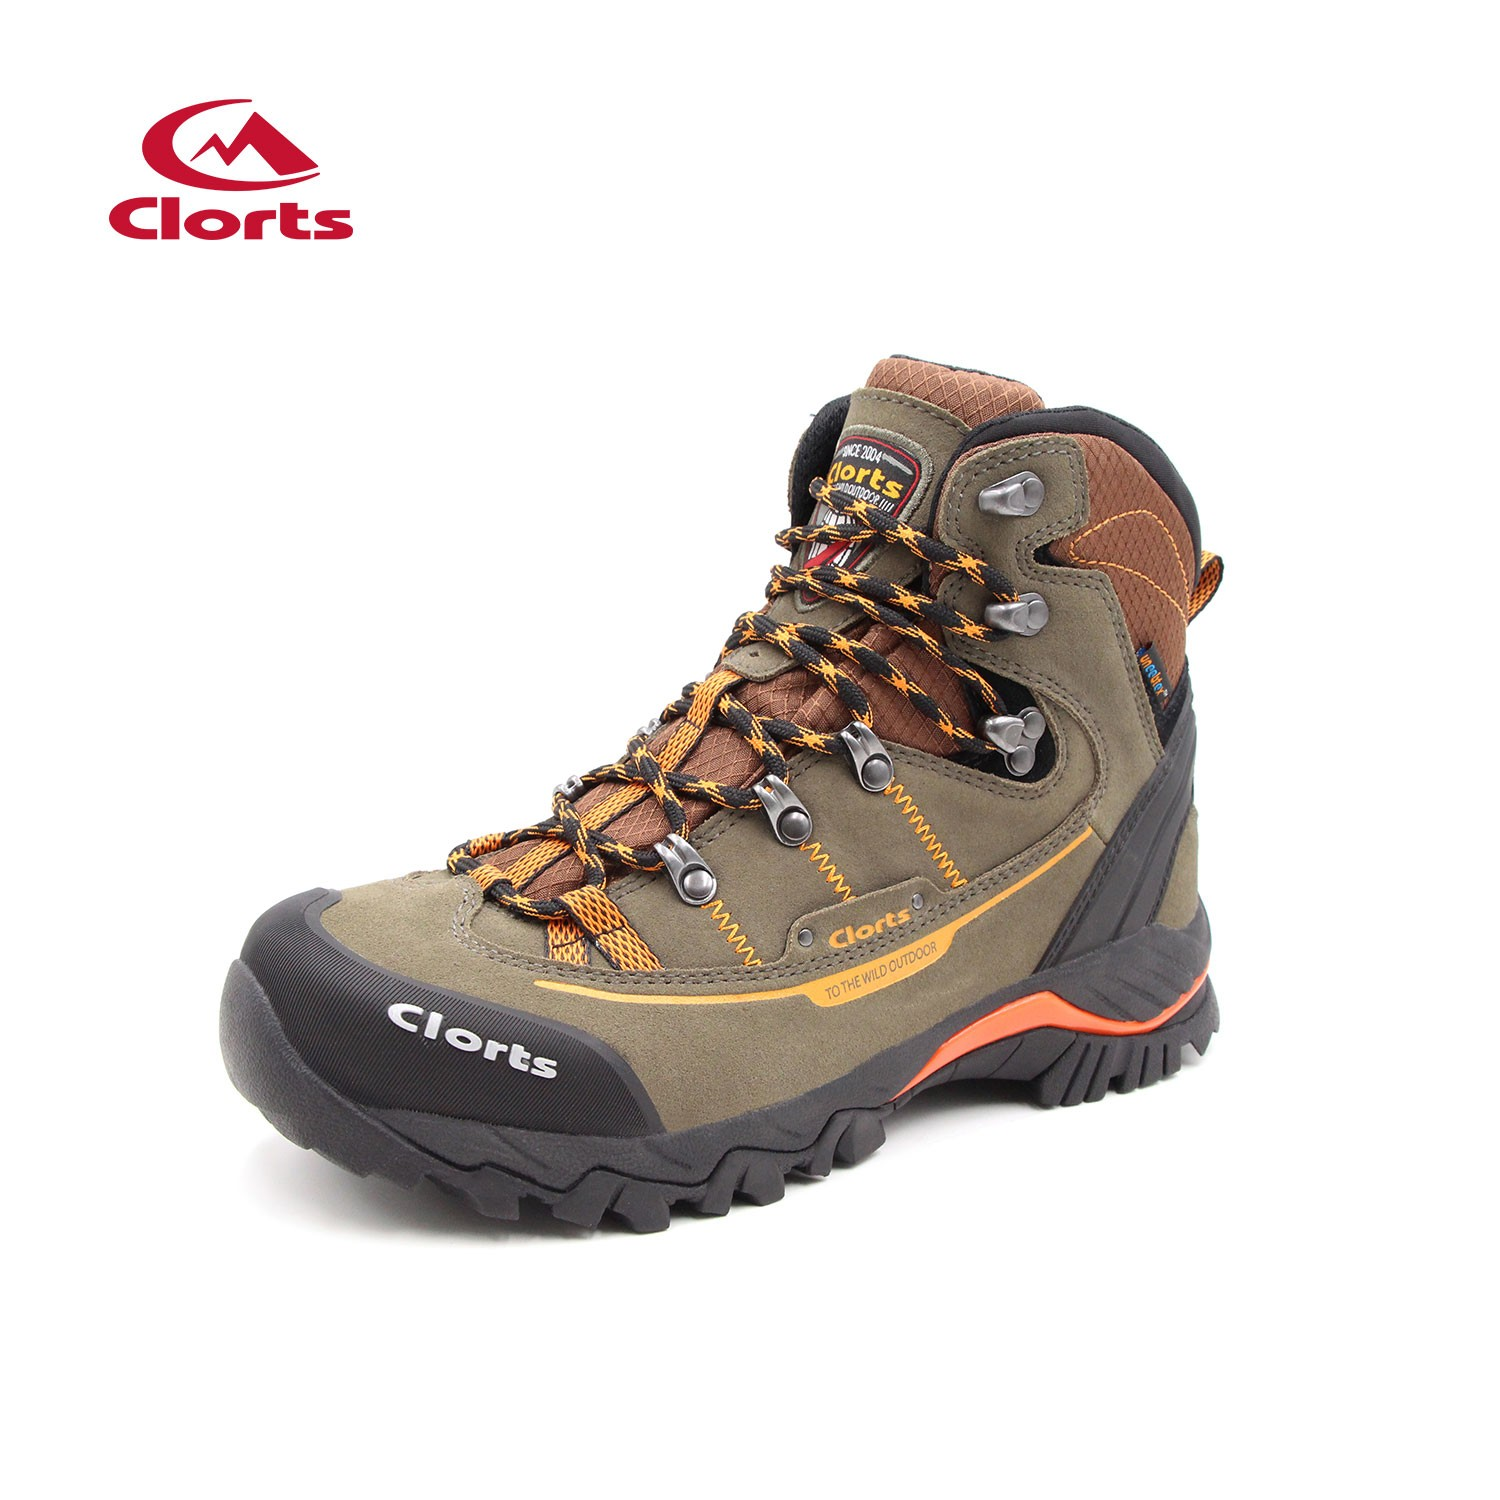 Membeli Clorts Mens Mid Outdoor Backpacking Trekking Trails Boots Brown,Clorts Mens Mid Outdoor Backpacking Trekking Trails Boots Brown Harga,Clorts Mens Mid Outdoor Backpacking Trekking Trails Boots Brown Jenama,Clorts Mens Mid Outdoor Backpacking Trekking Trails Boots Brown  Pengeluar,Clorts Mens Mid Outdoor Backpacking Trekking Trails Boots Brown Petikan,Clorts Mens Mid Outdoor Backpacking Trekking Trails Boots Brown syarikat,